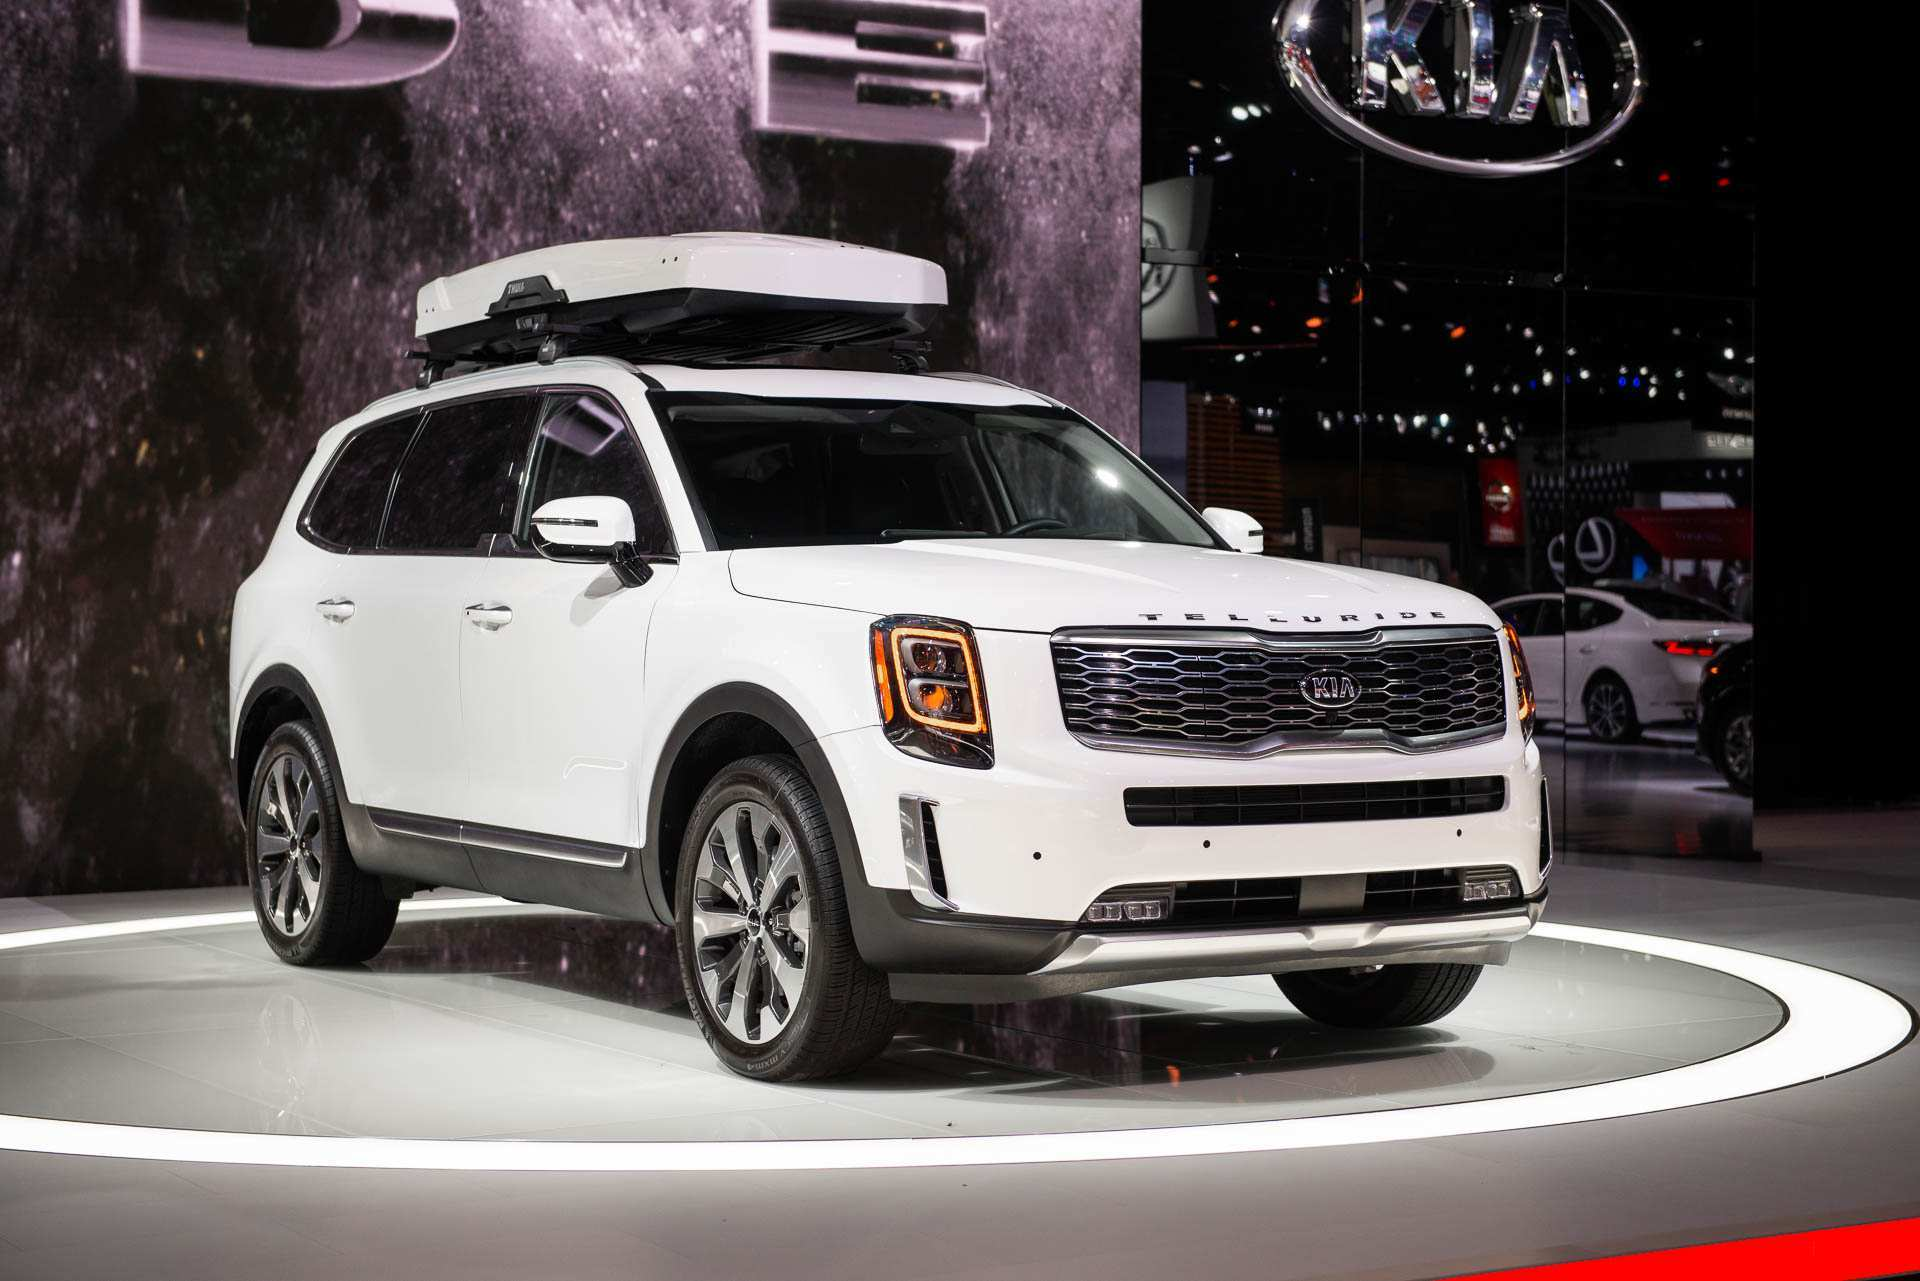 11 Great 2020 Kia Telluride Dimensions Spy Shoot with 2020 Kia Telluride Dimensions